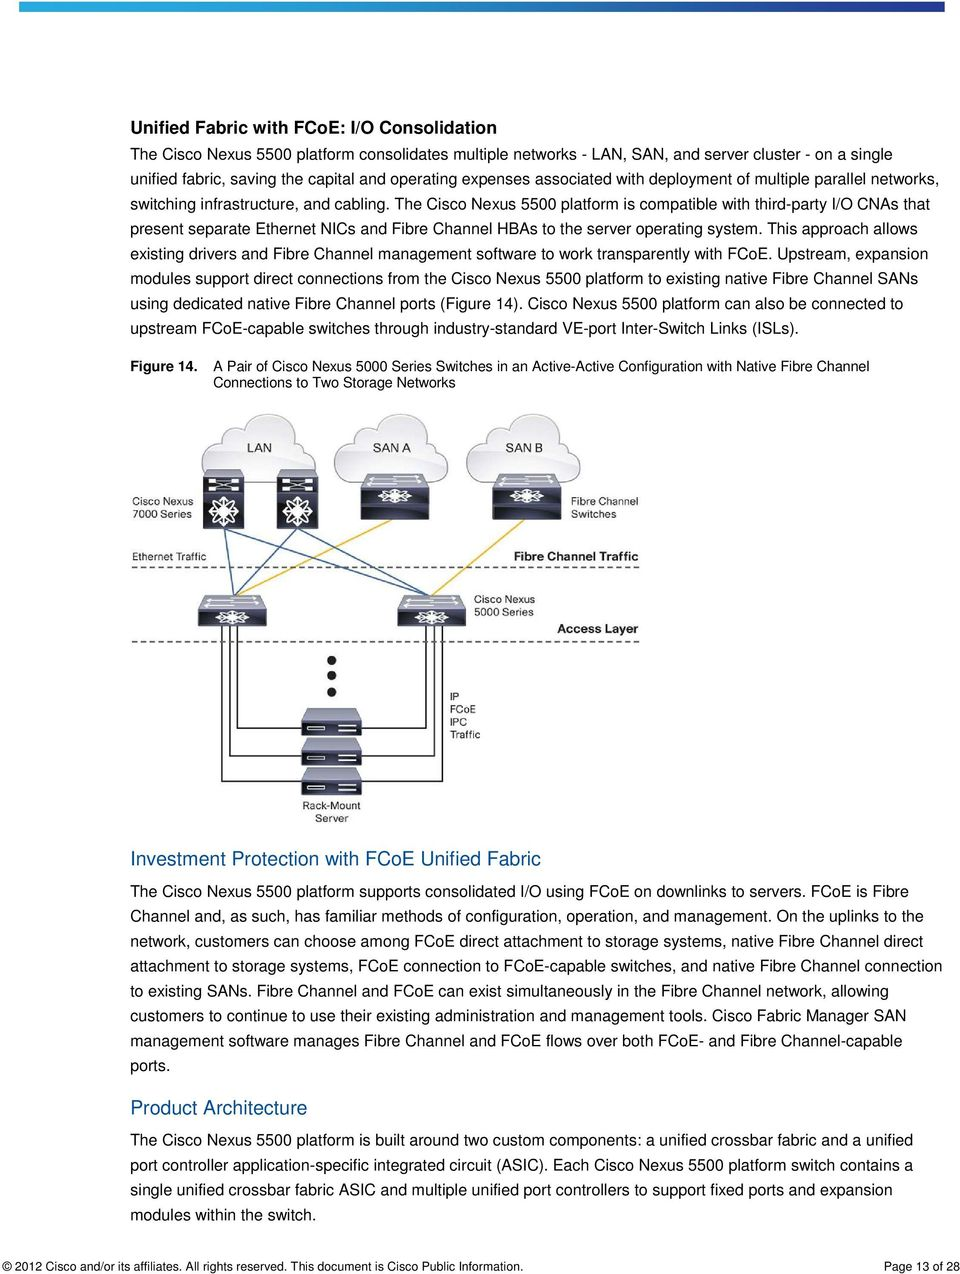 The Cisco Nexus 5500 platform is compatible with third-party I/O CNAs that present separate Ethernet NICs and Fibre Channel HBAs to the server operating system.